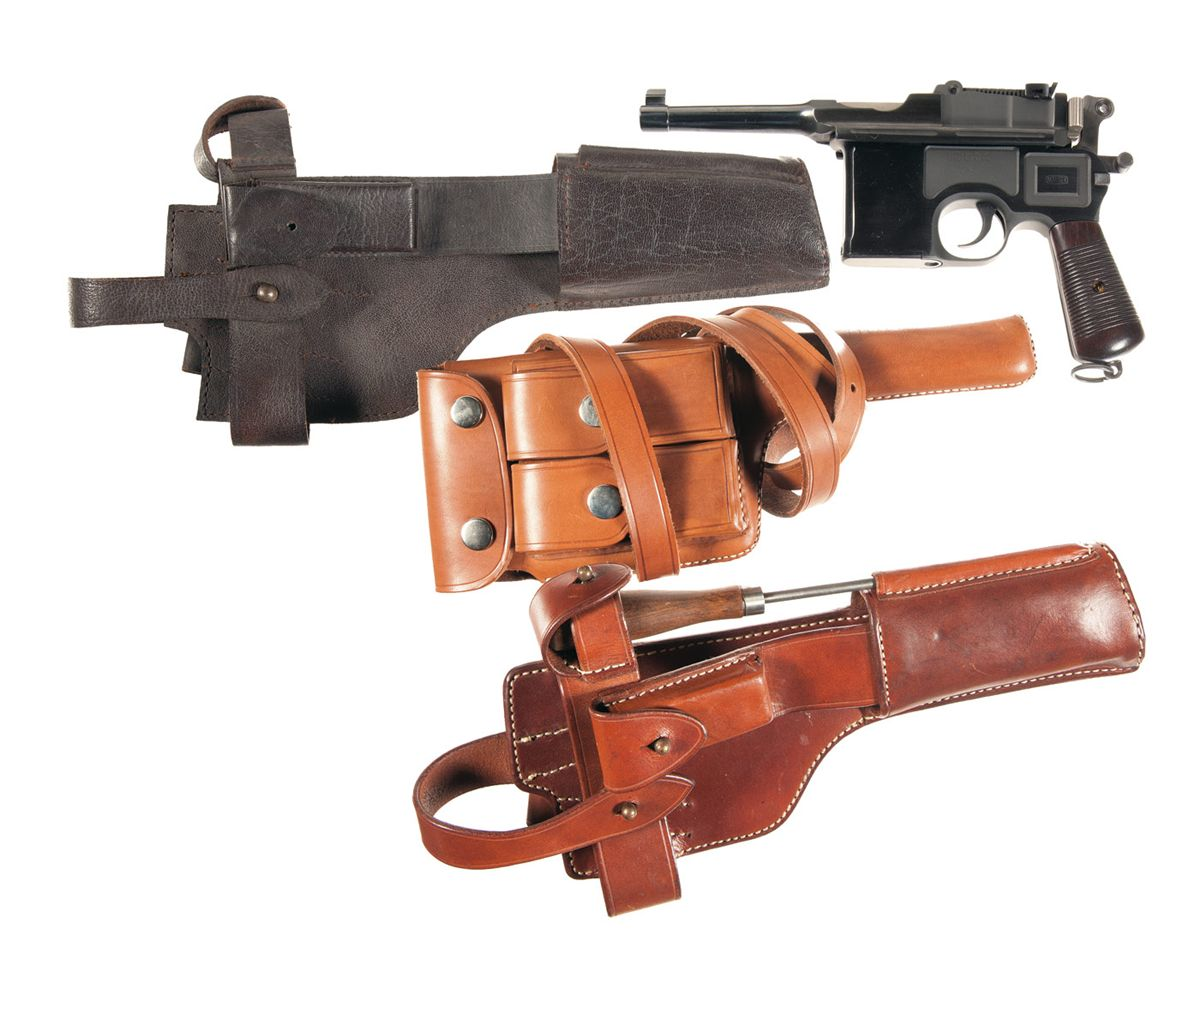 Two German Pistols -A) Mauser Model 1930 Broomhandle Semi ...